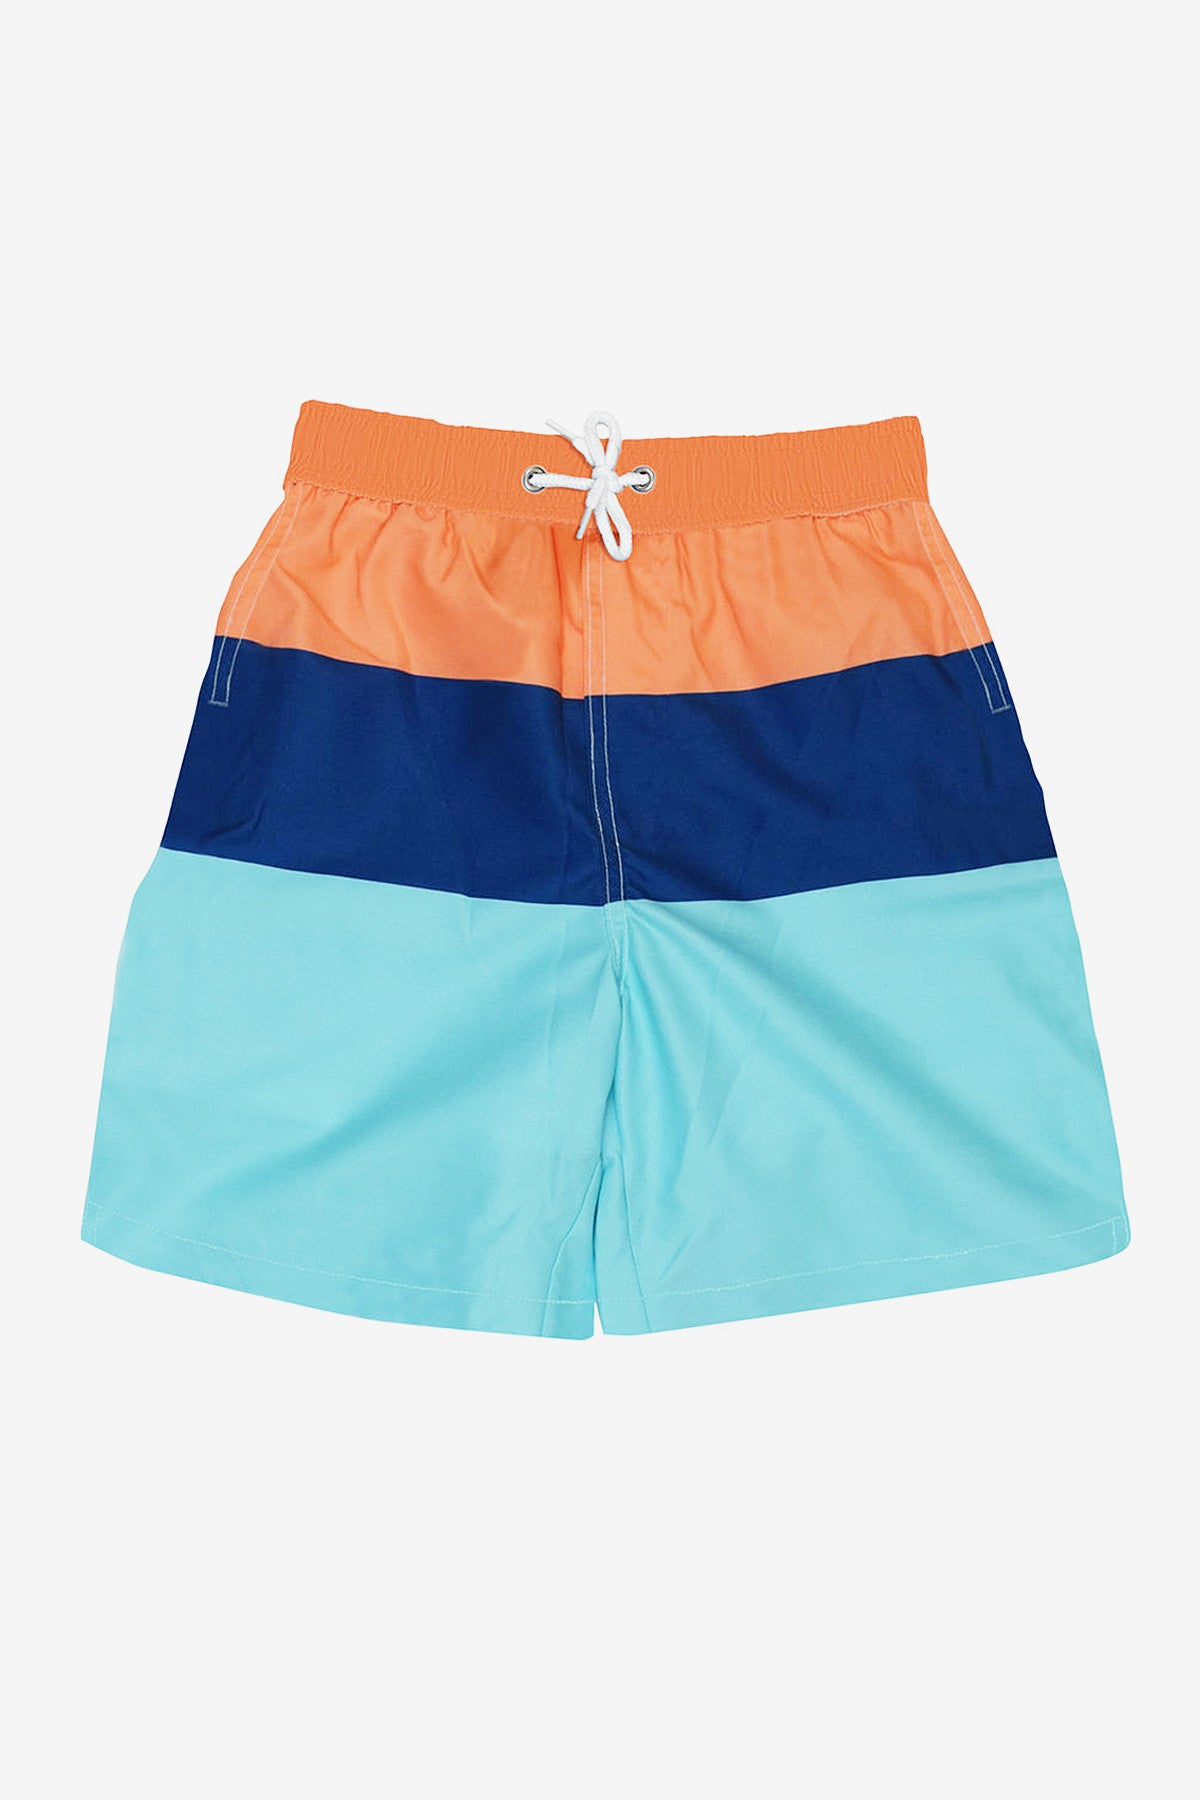 Toobydoo Colorblock Swim Board Shorts